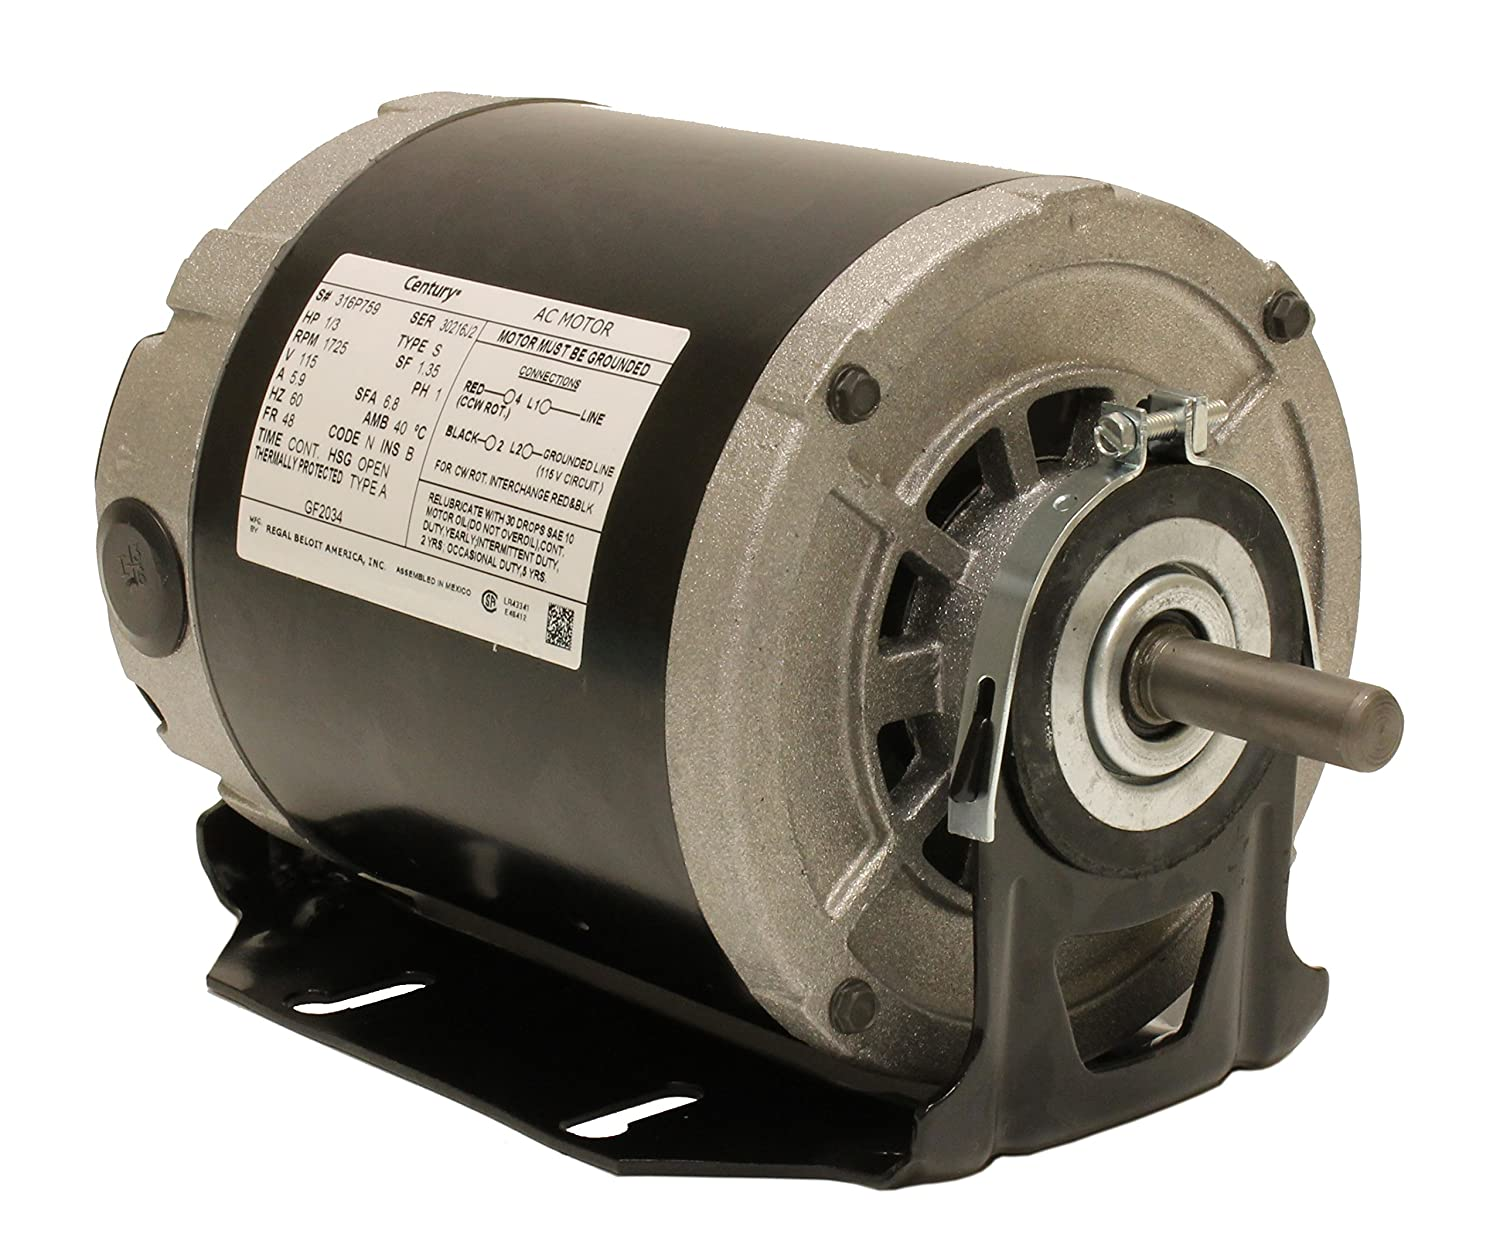 A.O. Smith GF2034 1/3 hp, 1725 RPM, 115 volts, 48/56 Frame, ODP, Sleeve  Bearing Belt Drive Blower Motor - Electric Fan Motors - Amazon.com